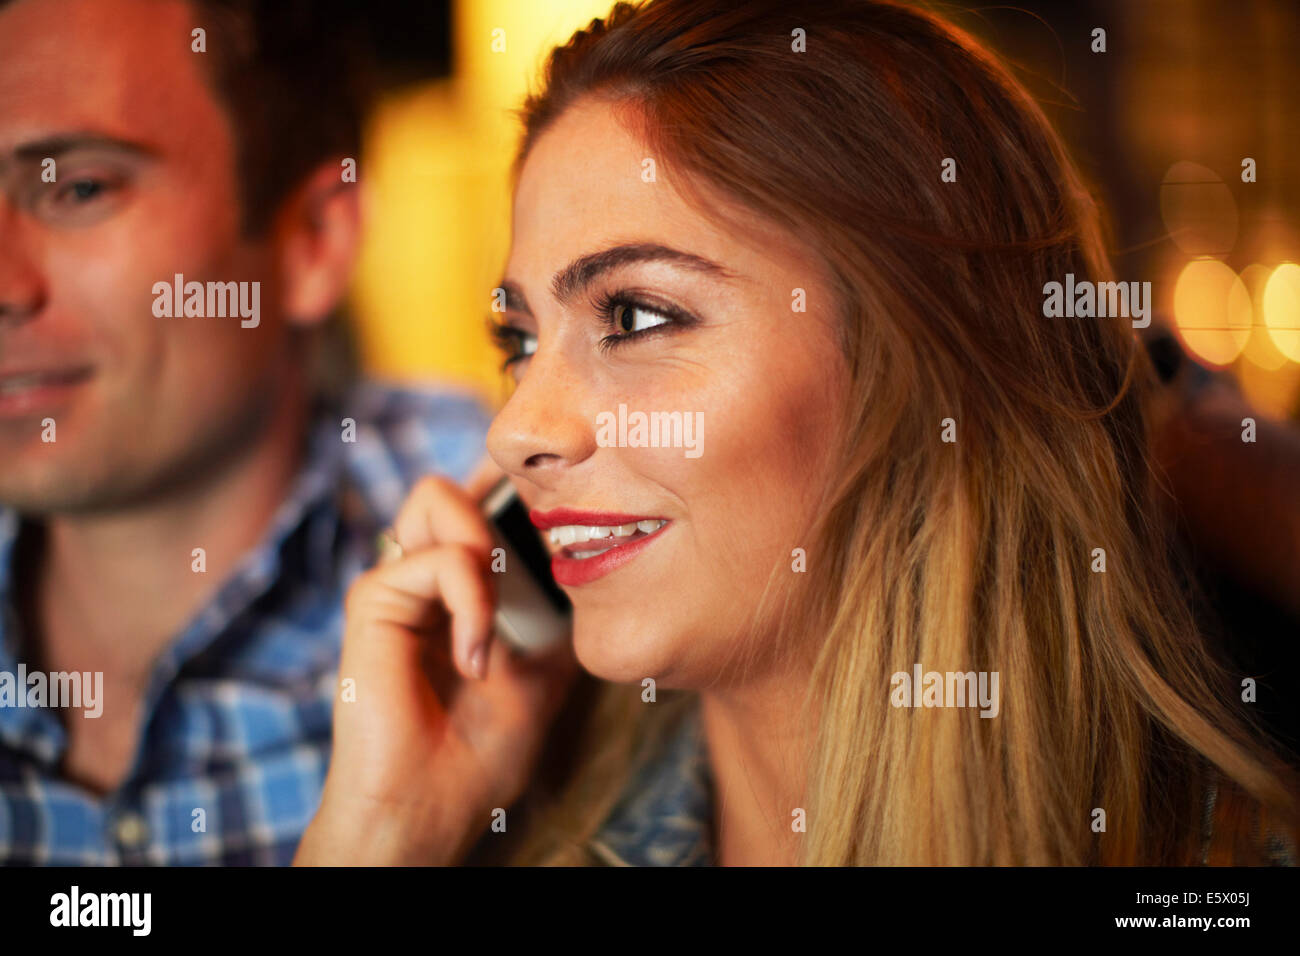 Young woman with boyfriend chatting on smartphone city taxi at night - Stock Image